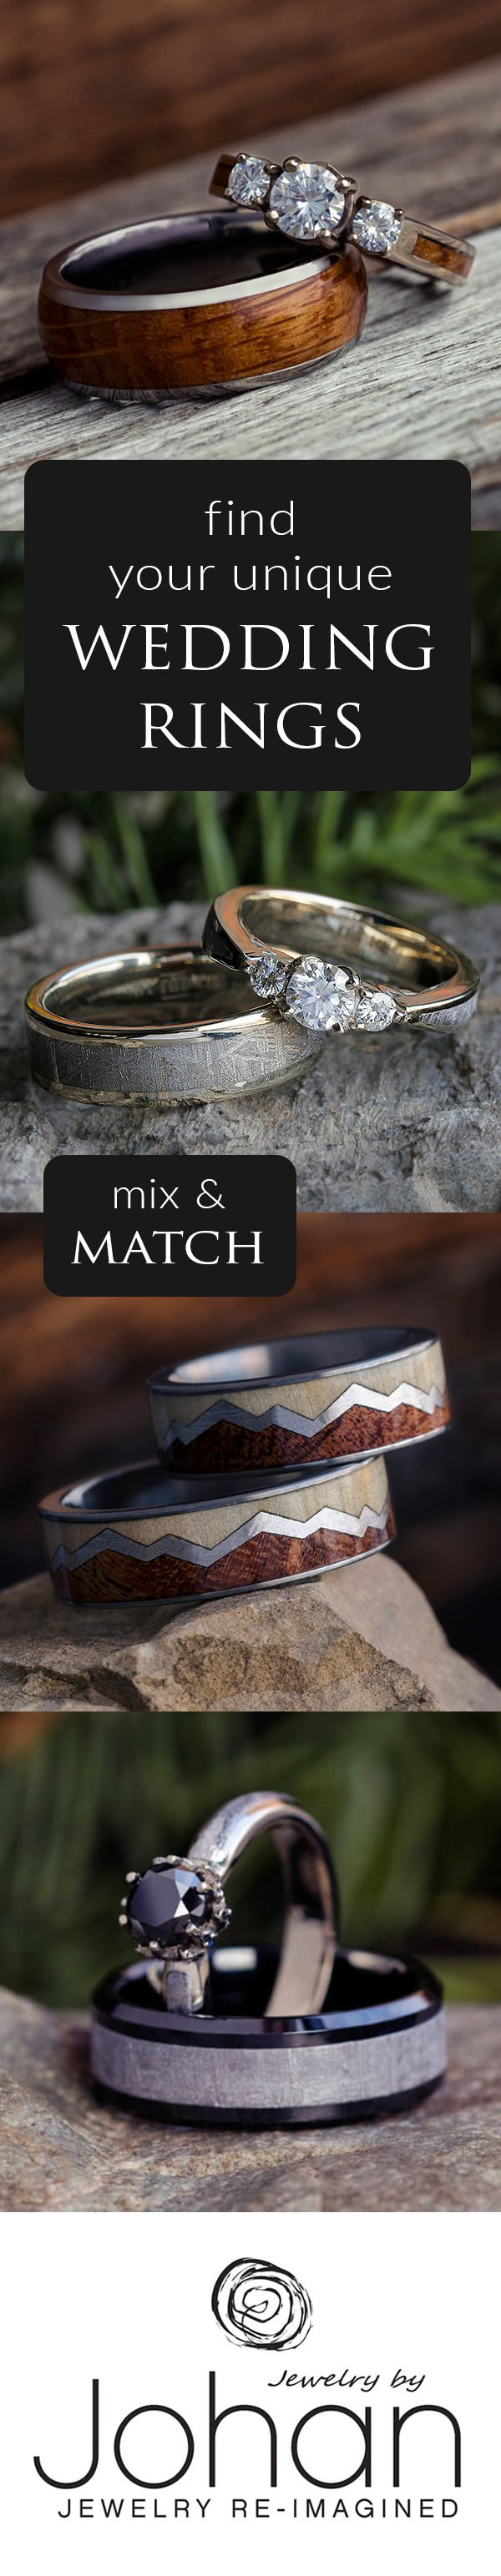 Discover hundreds of extraordinary wedding rings, or completely custom create your own wedding bands. Mix and match to create a ring set that is unique to your love story!